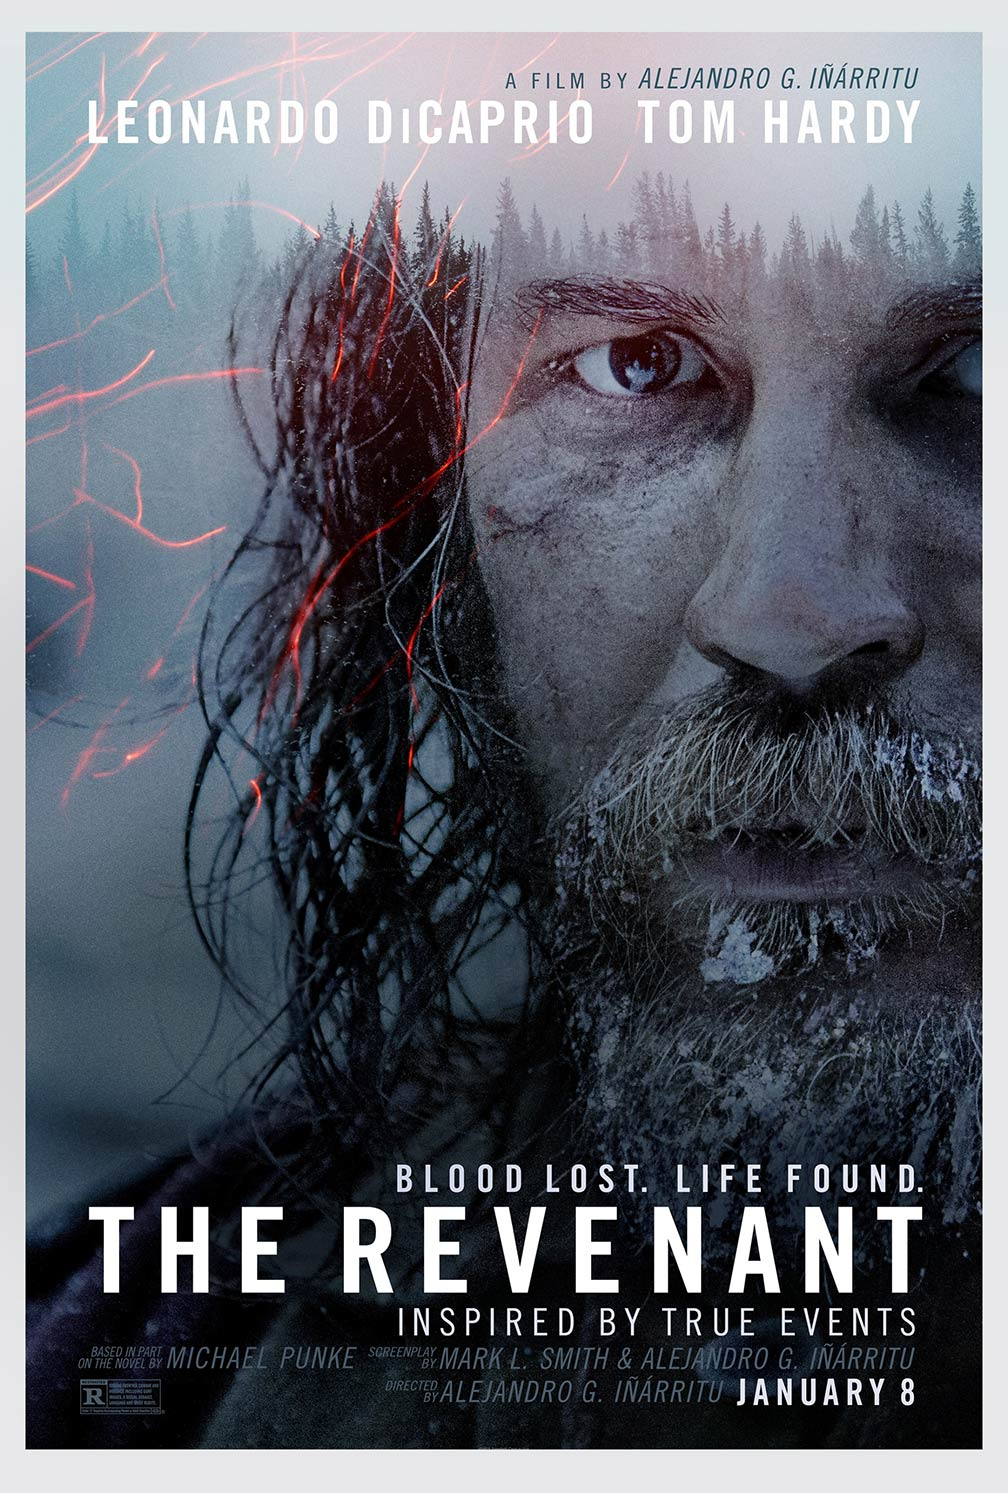 the revenant movie download in hindi 480p